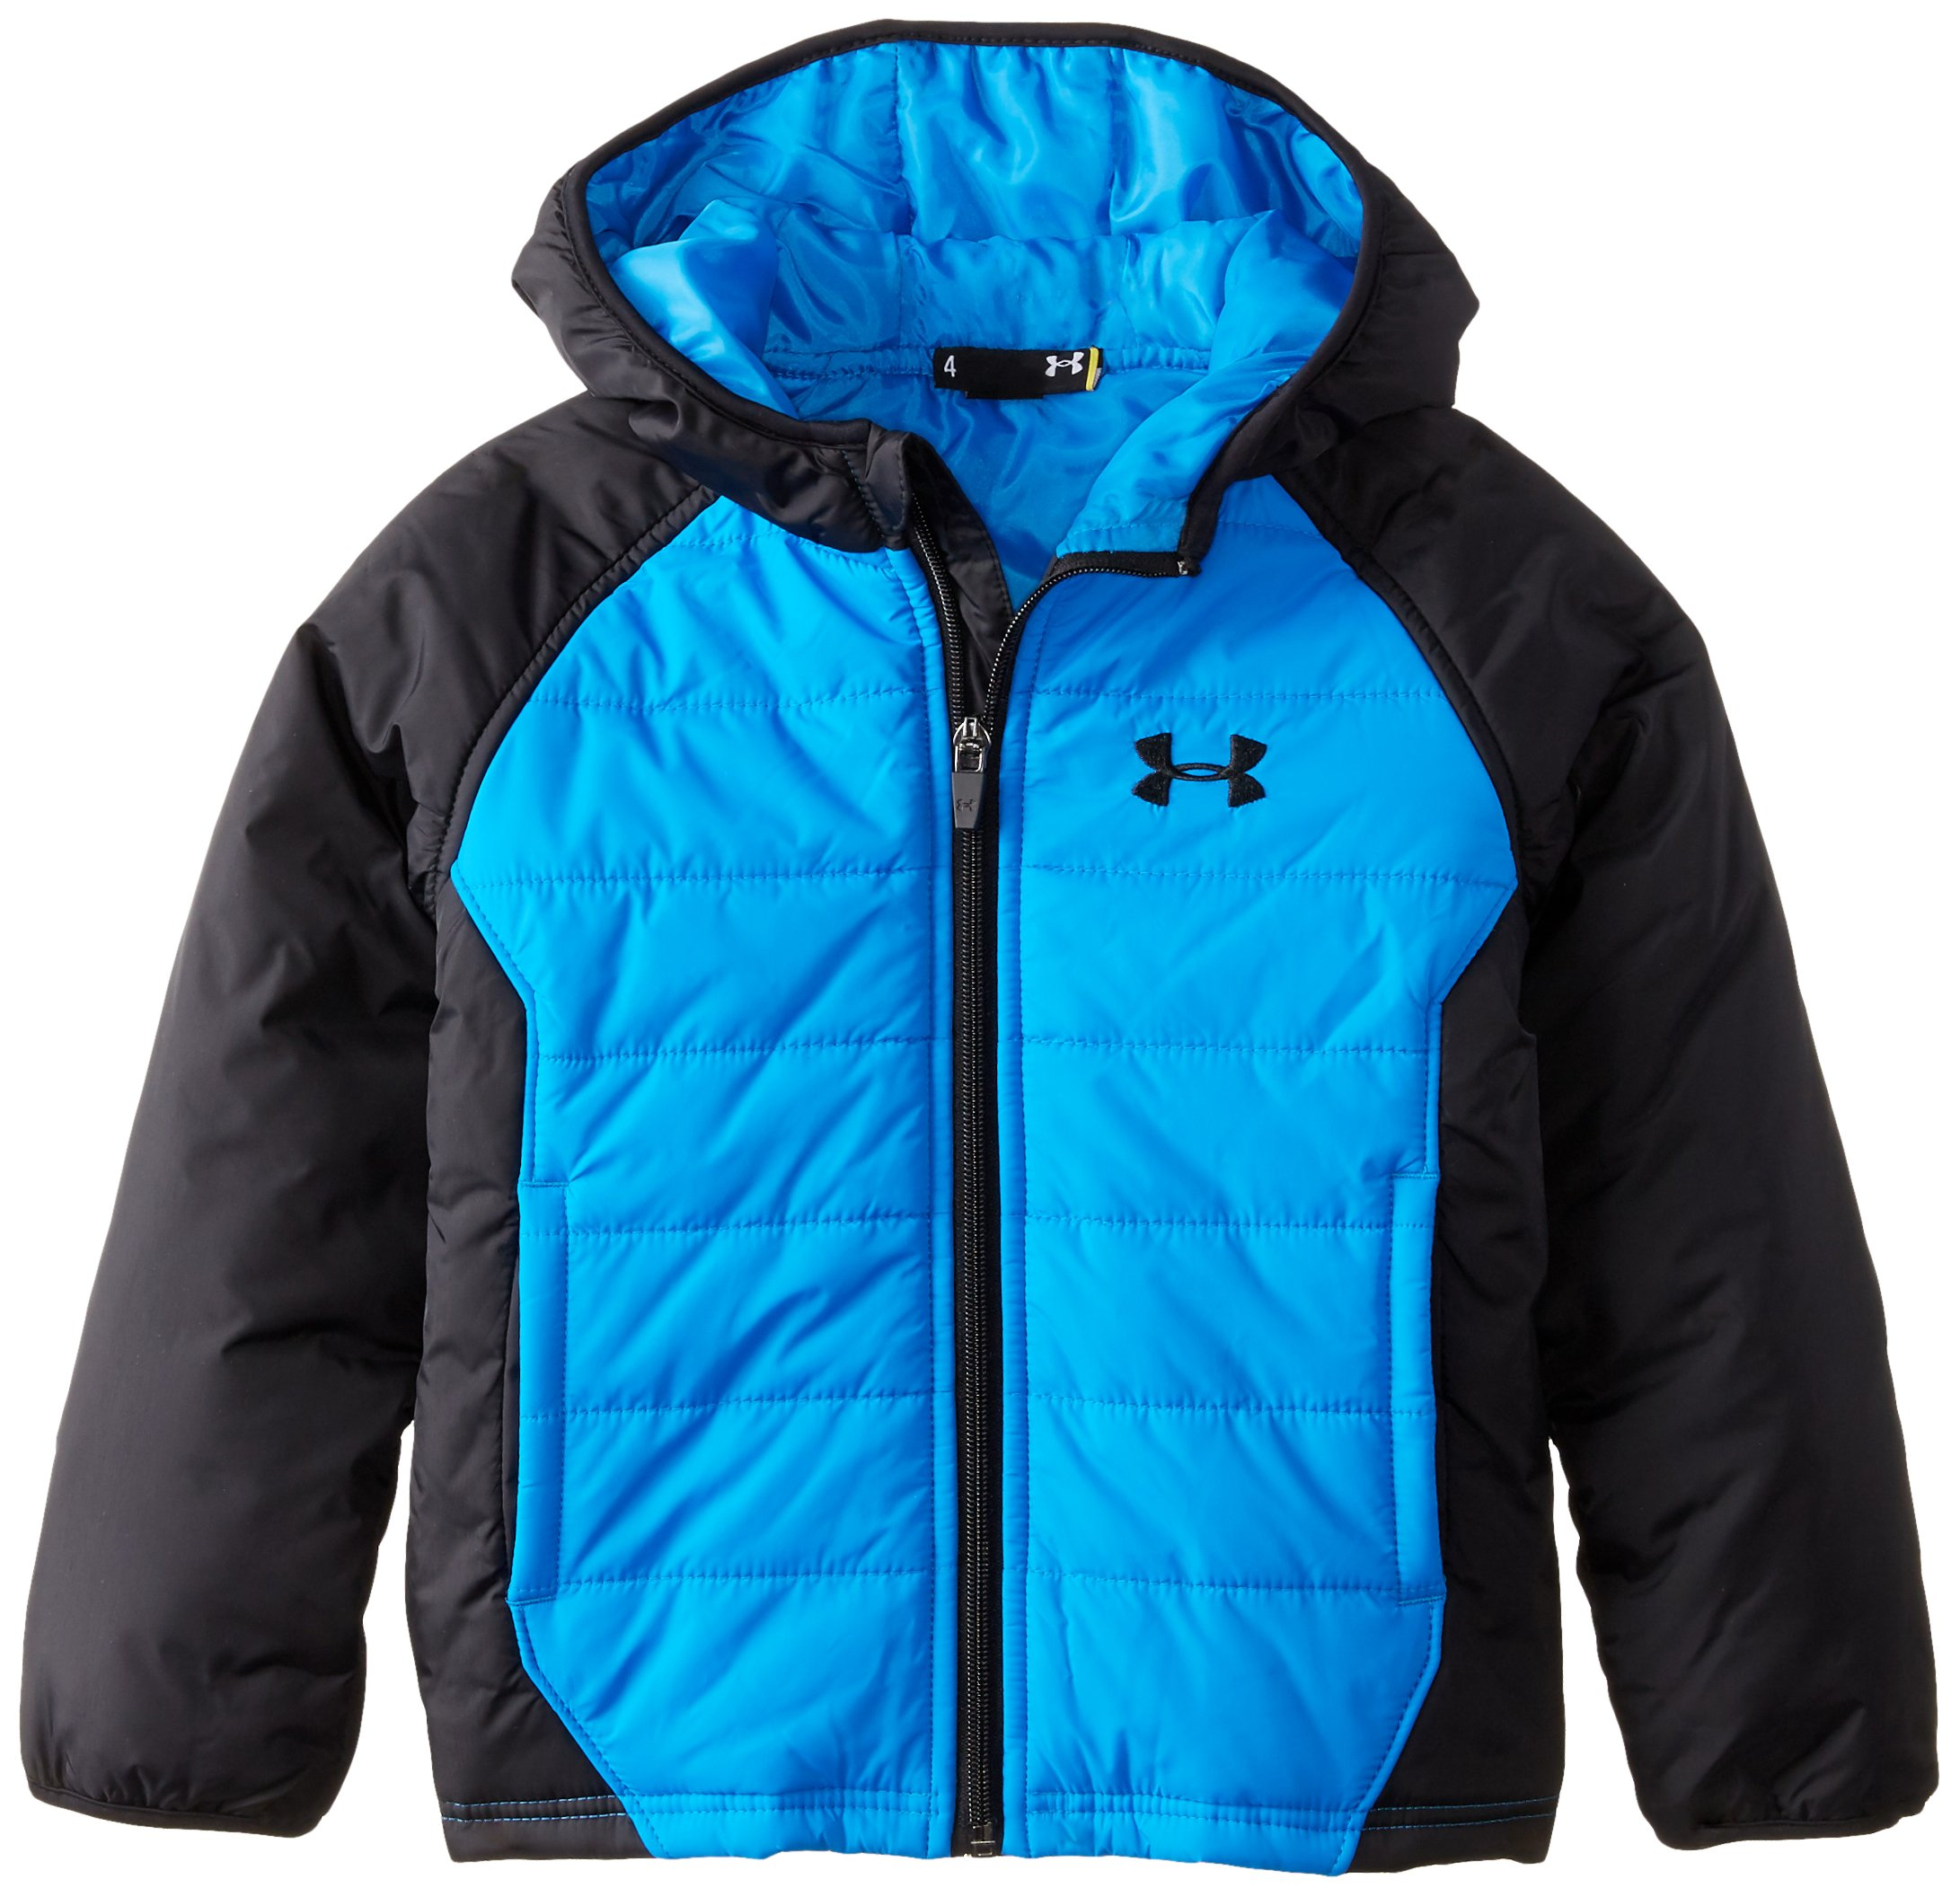 Under Armour Little Boys' Werewolf UA Quilted Jacket, Blue Jet, 5